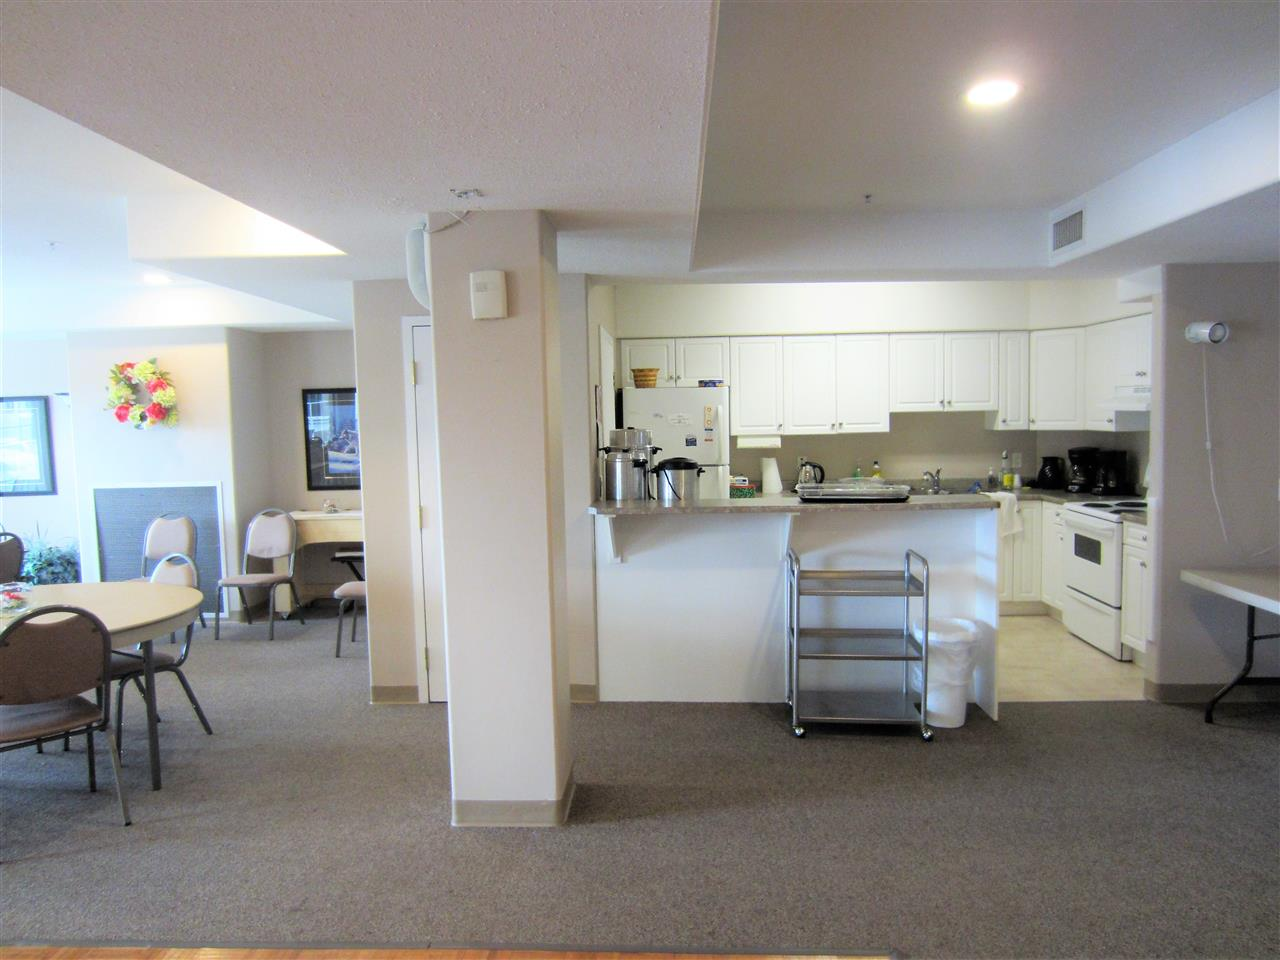 Kitchen in recreation/Social room